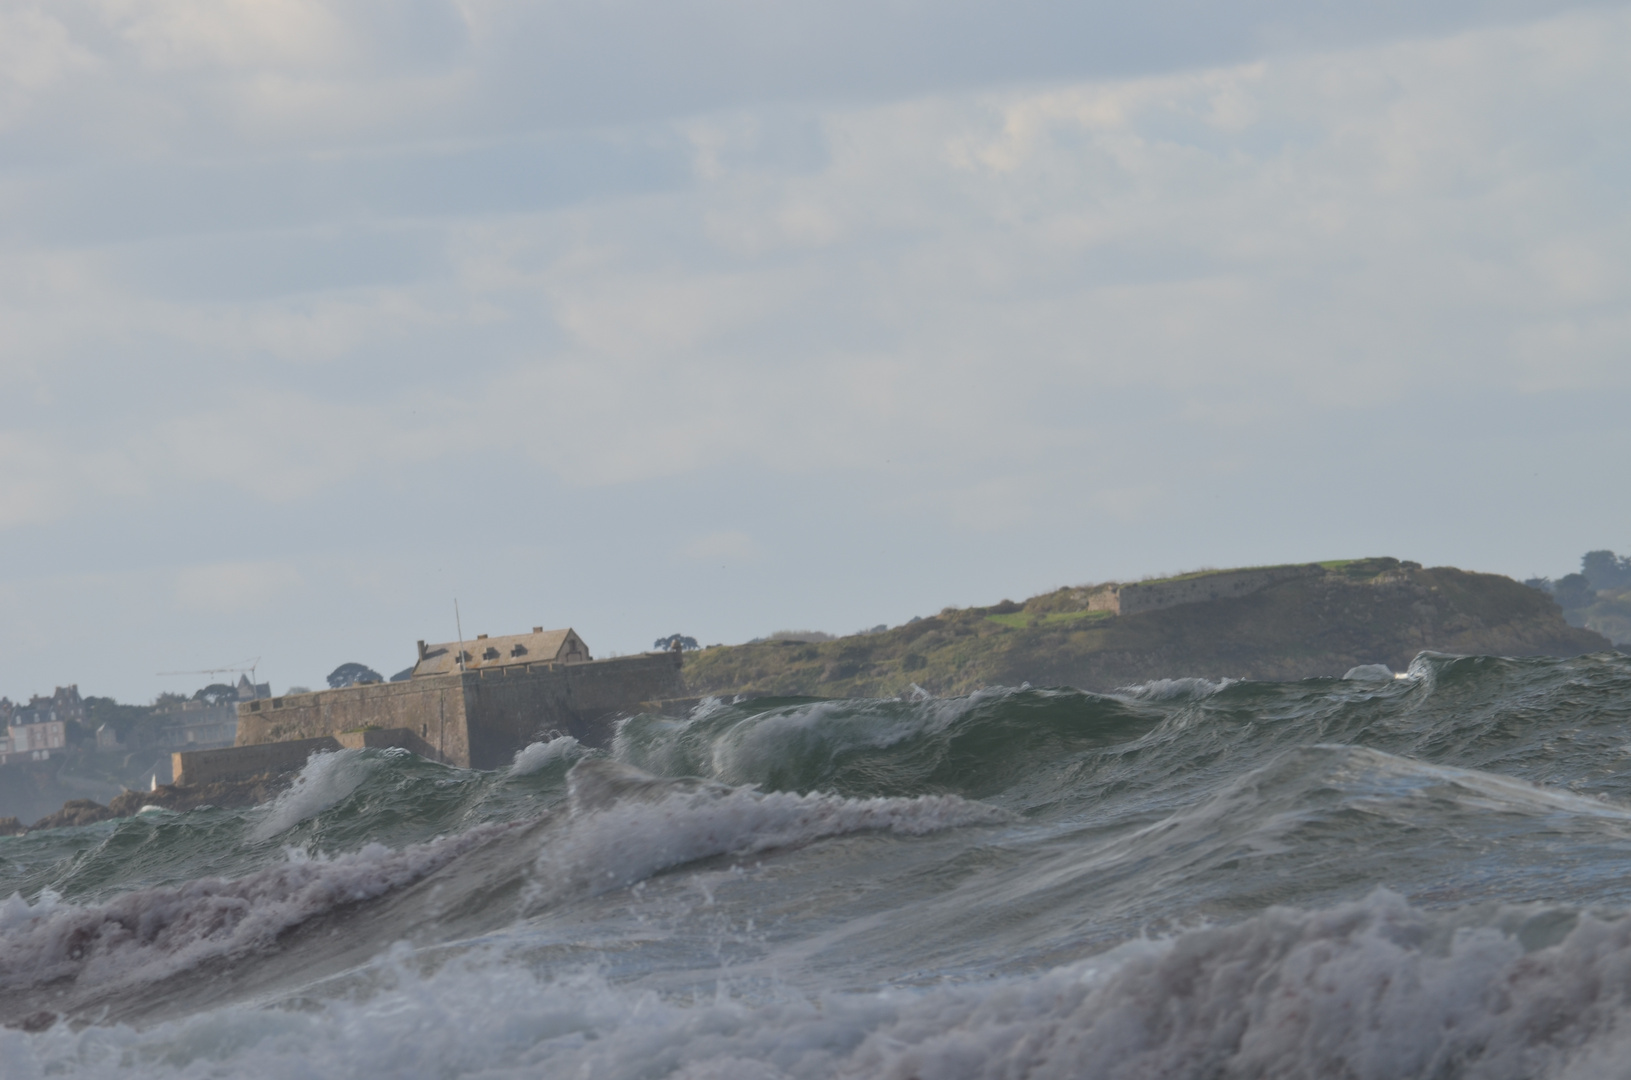 Strong Storm over Saint Malo